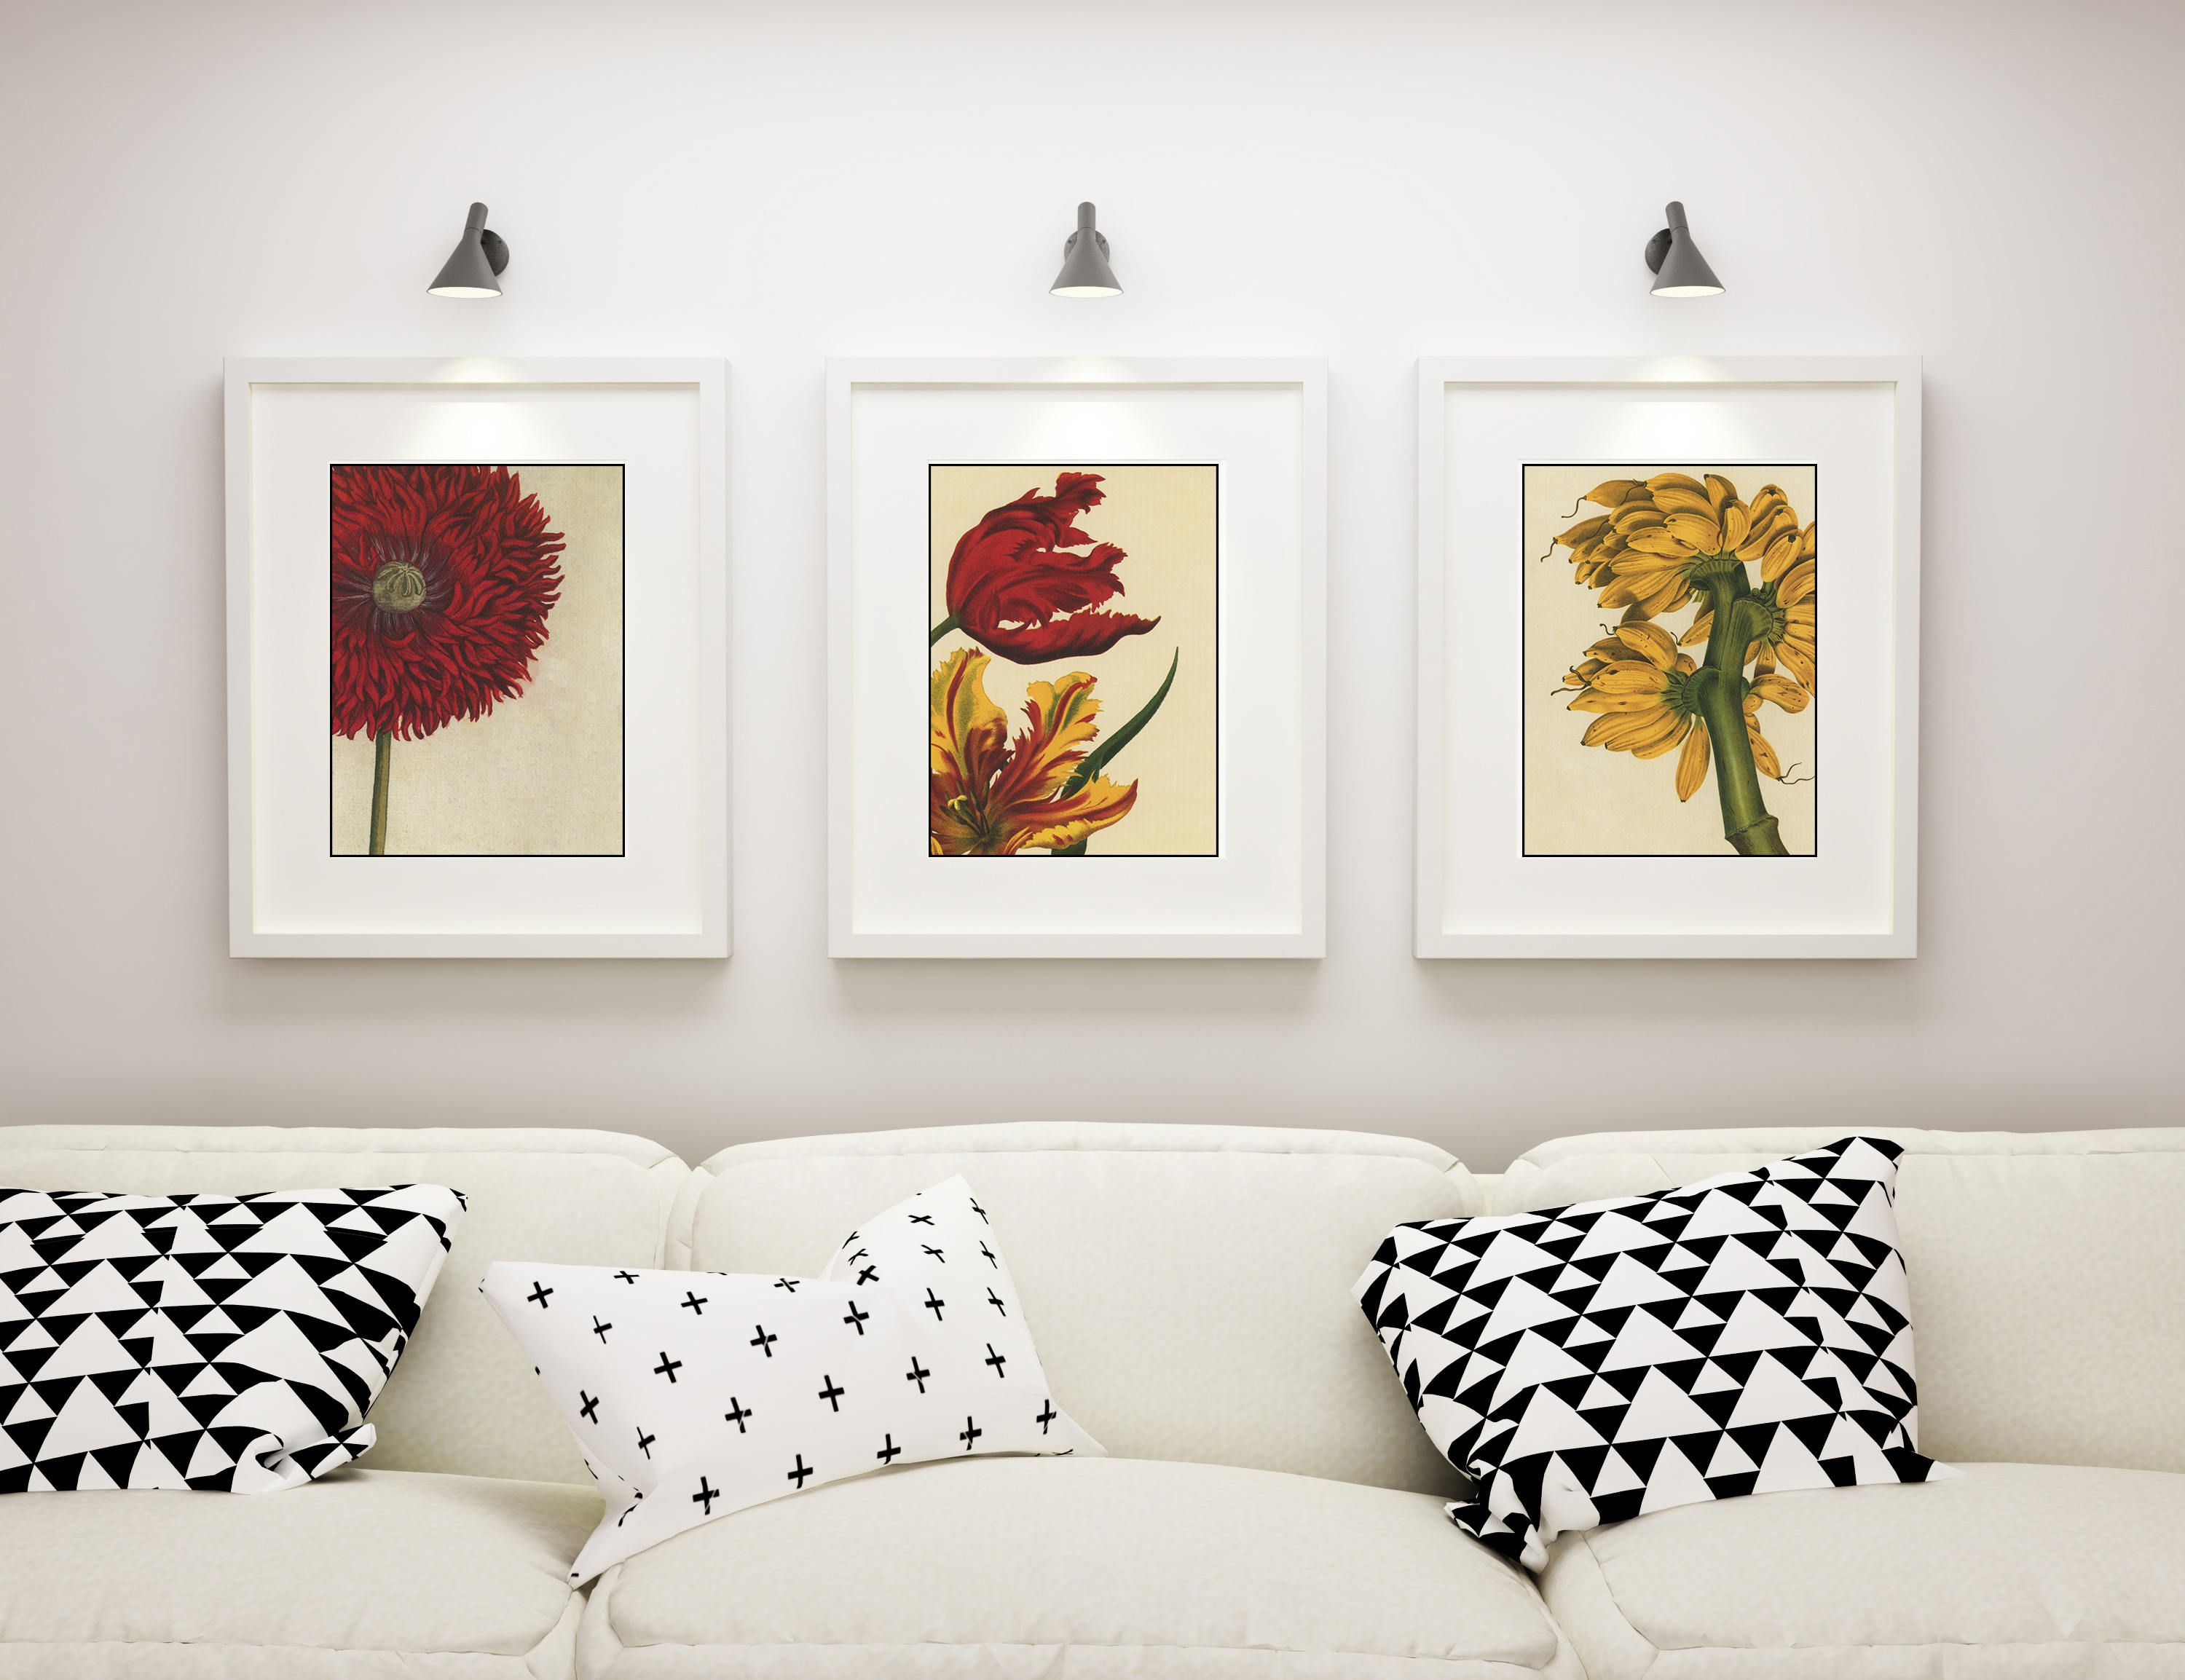 Botanical print set of 3 framed botanical prints modern botanical wall art wildflowers red flowers yellow flowers by picturebypicture on etsy